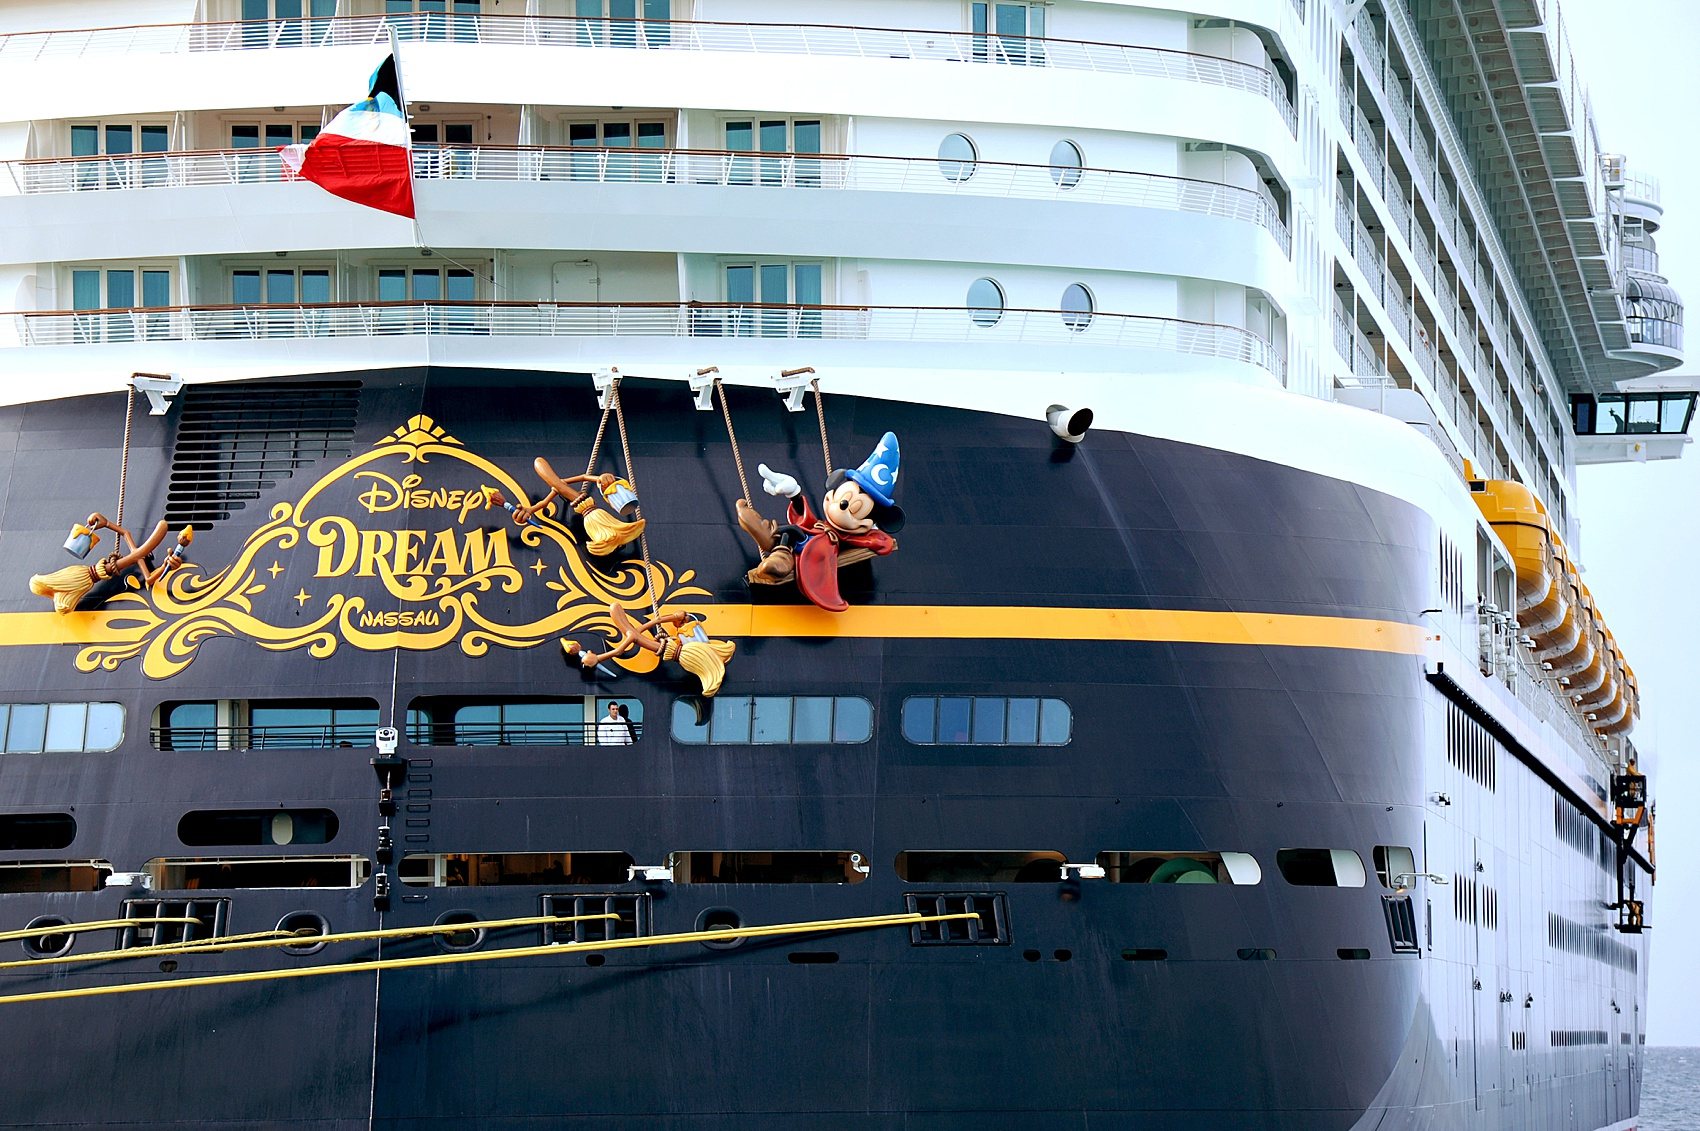 Information And Ideas About Bringing Your Own Disney Cruise Line Wedding Photographer For A DCL Dream